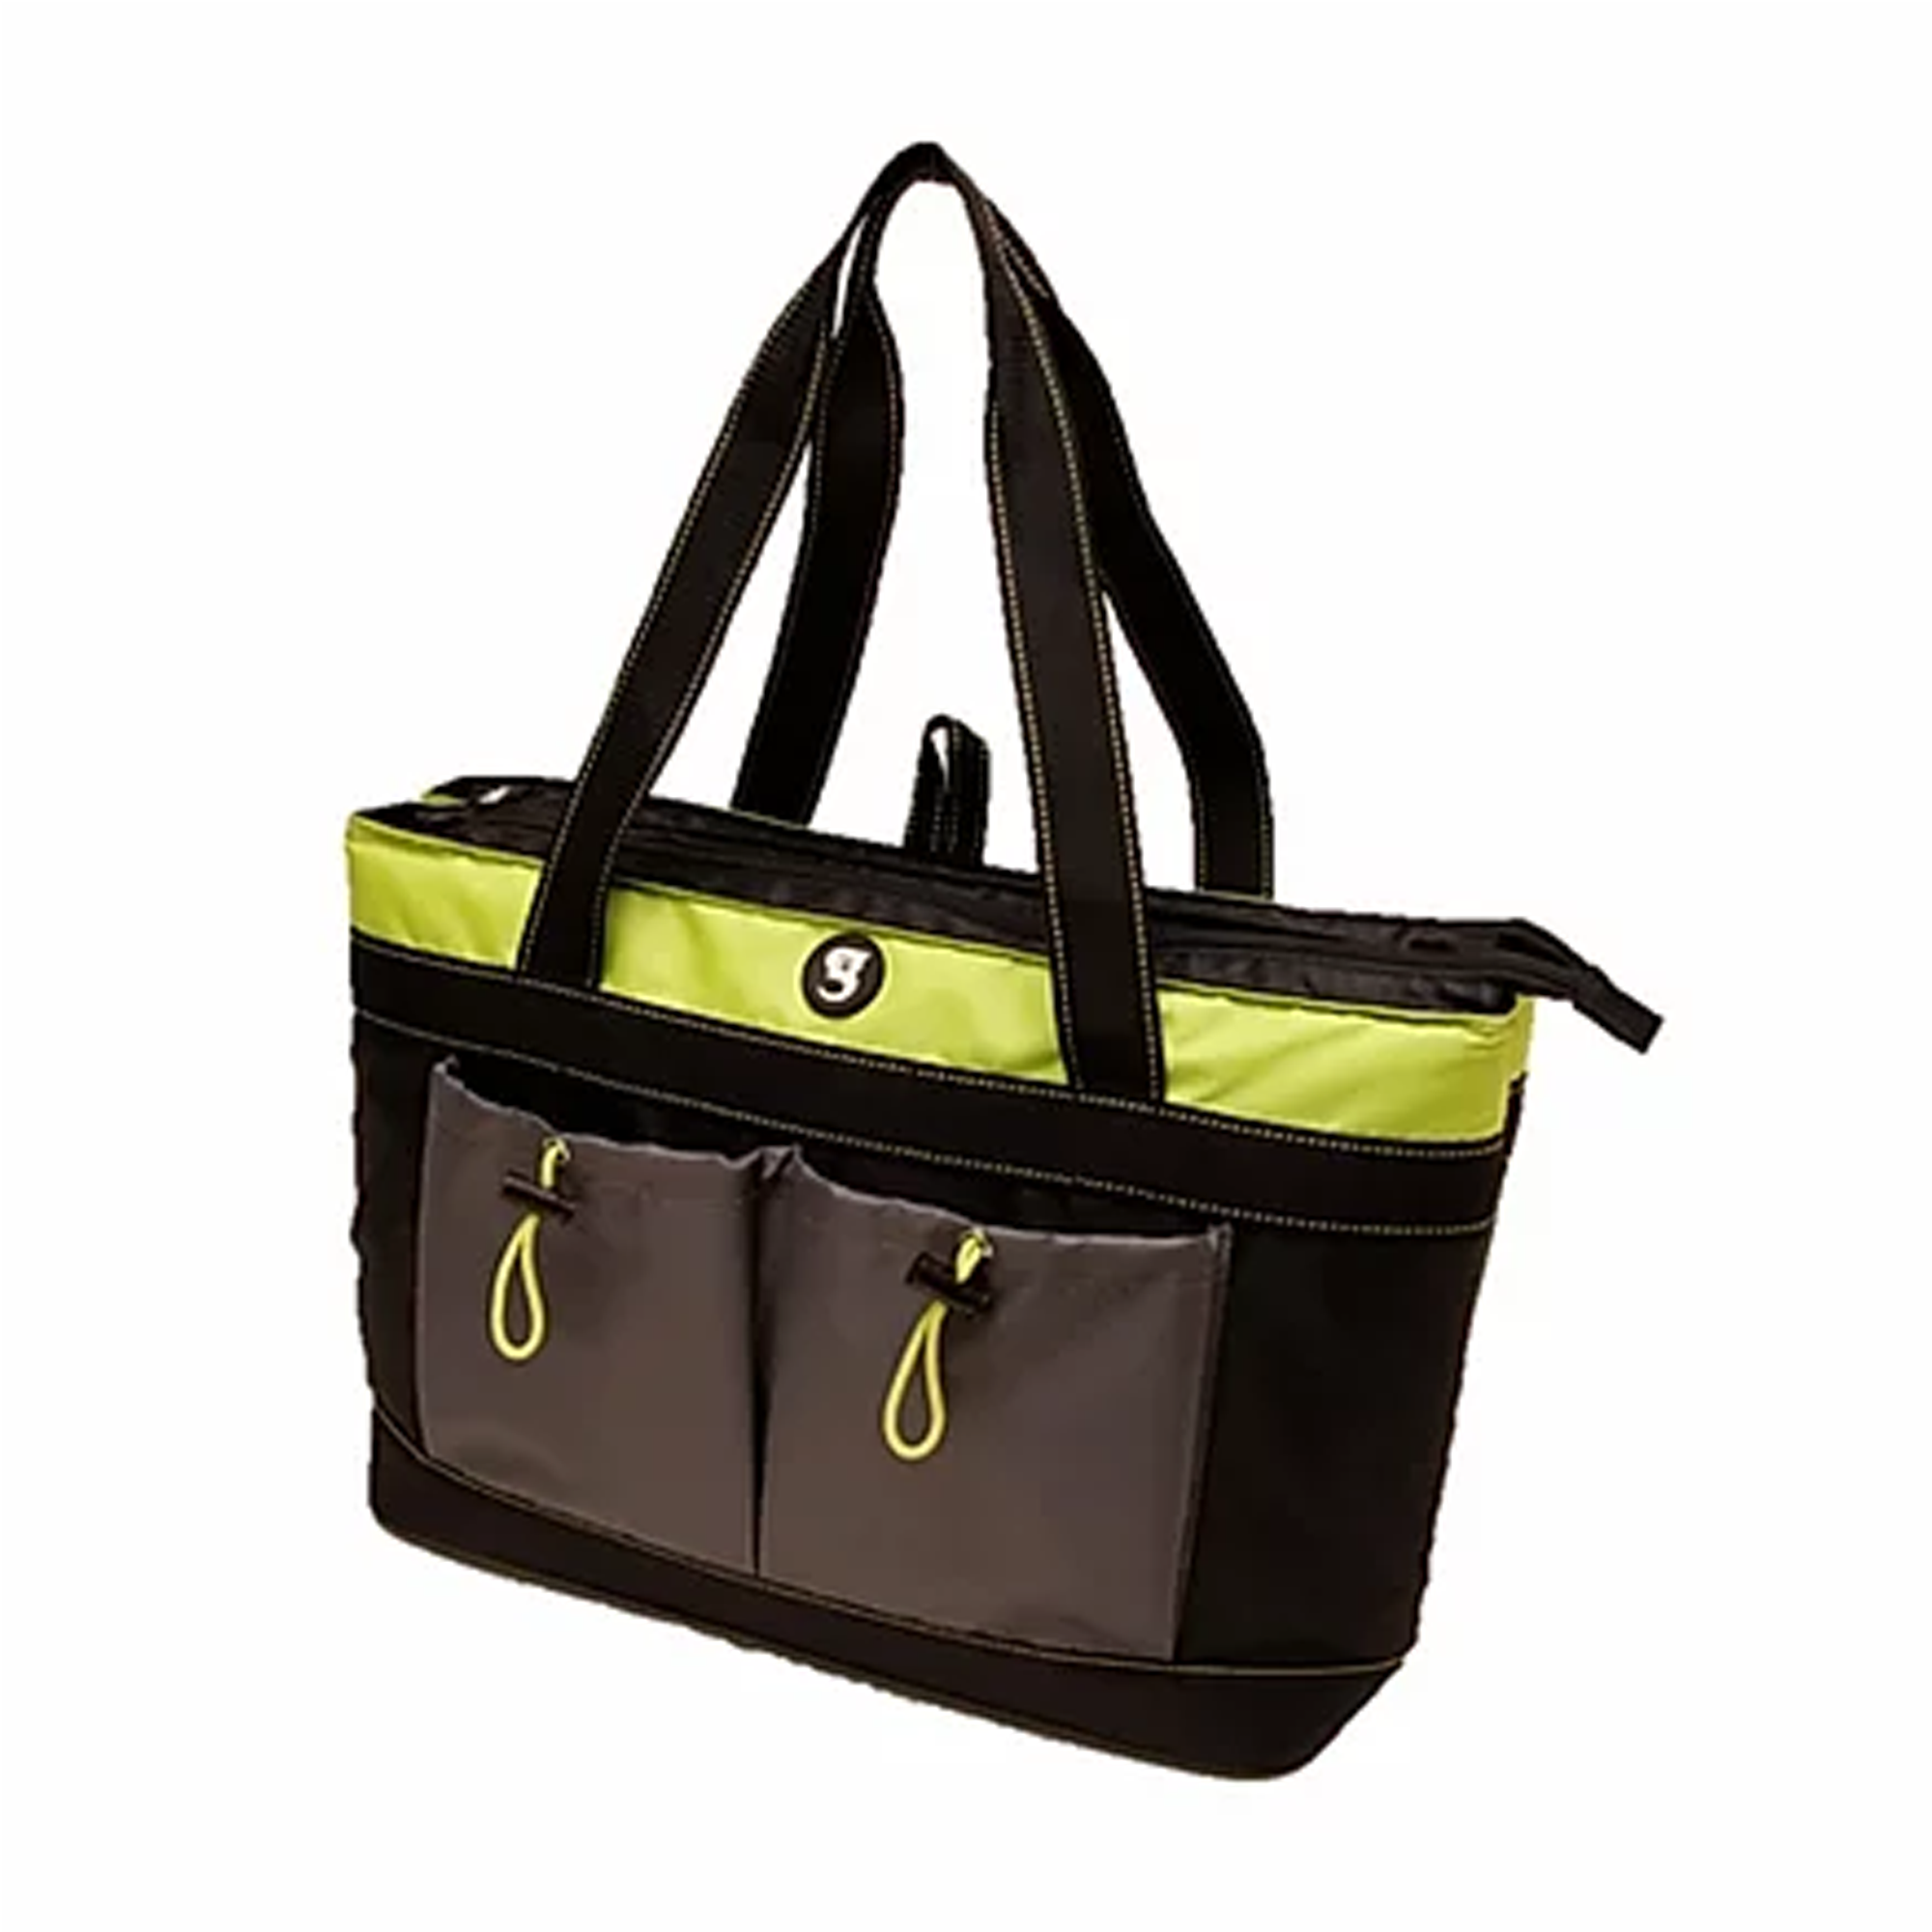 Geckobrands 2 Compartment Tote Cooler